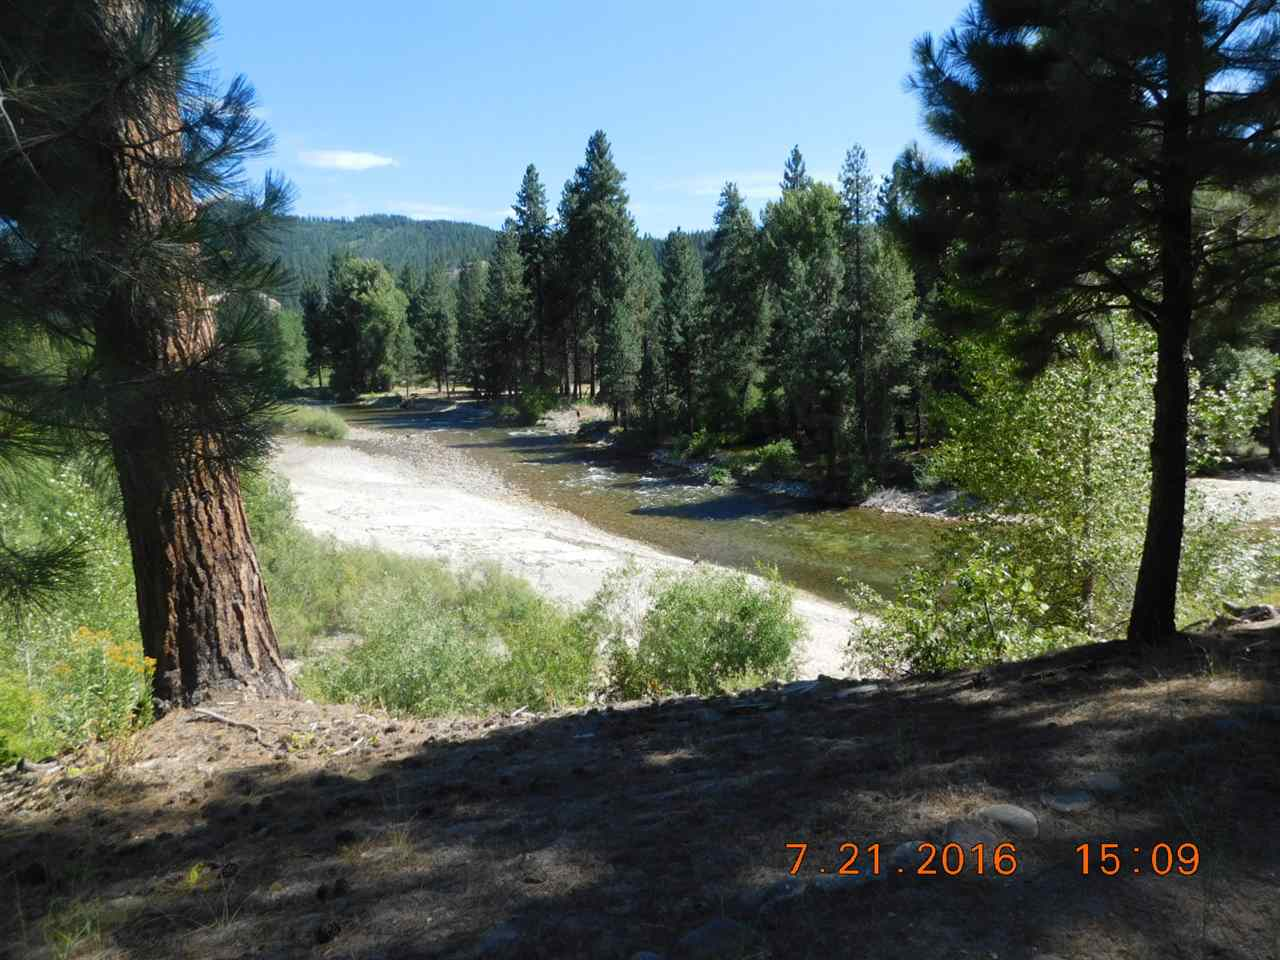 Lot 8 Section 10 T3N R10E, Featherville, ID 83647